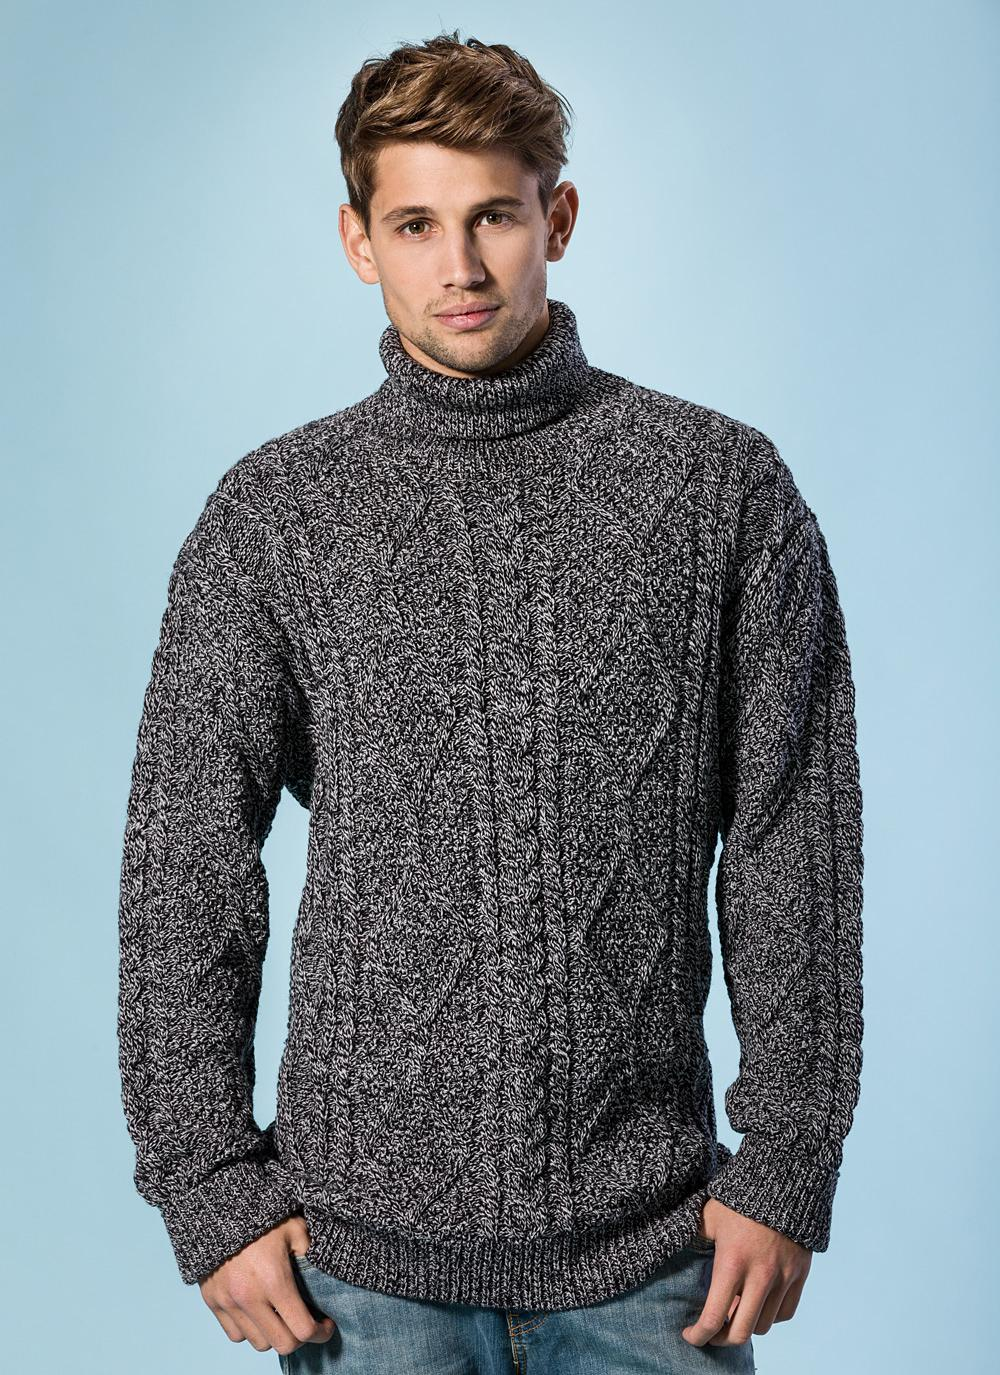 Lightweight Traditional Aran Mens Wool Sweater The Aran Sweater is a timeless wardrobe essential and a sweater for life. Worn for centuries by the fisherman of Ireland and popularized by Vogue in the 's, this rugged sweater is a true multi-tasker.